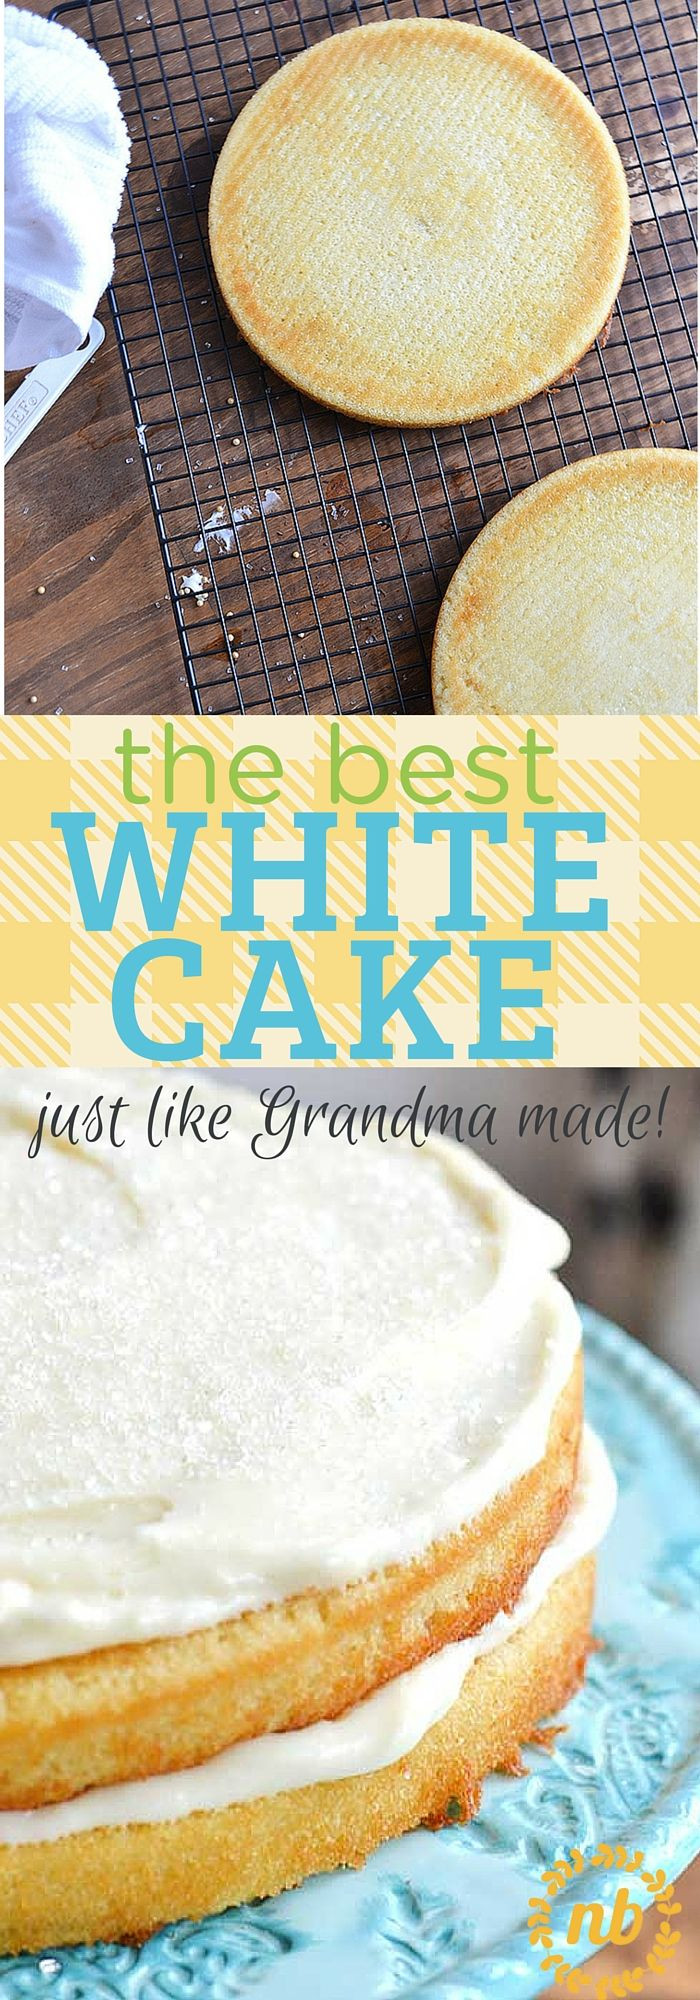 Easy White Cake Recipe  100 White cake recipes on Pinterest